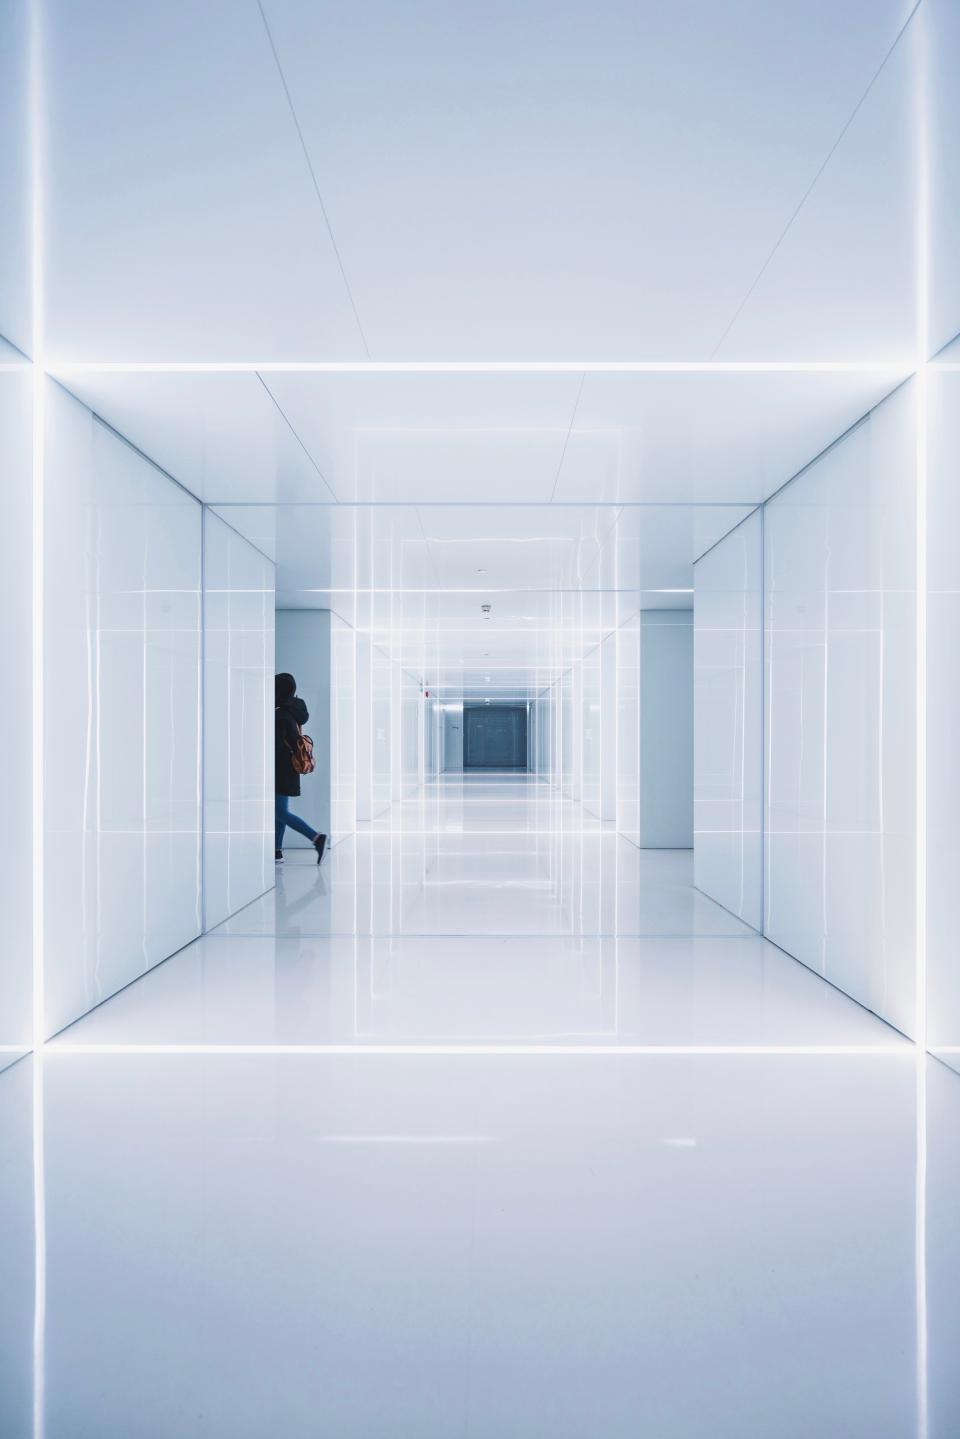 architecture building structure establishment symmetry white people hallway